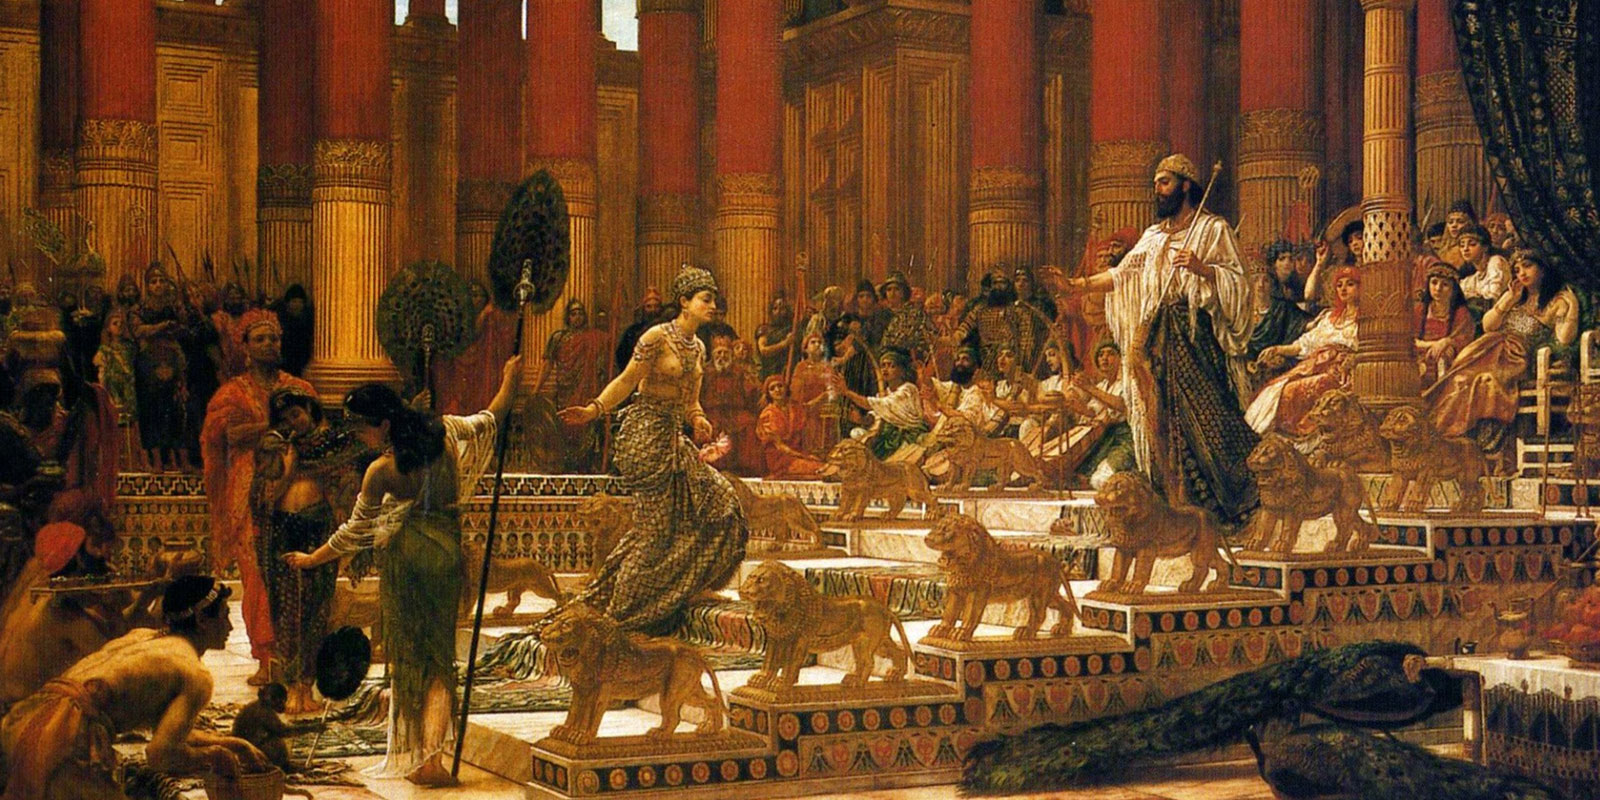 The Wise King Solomon